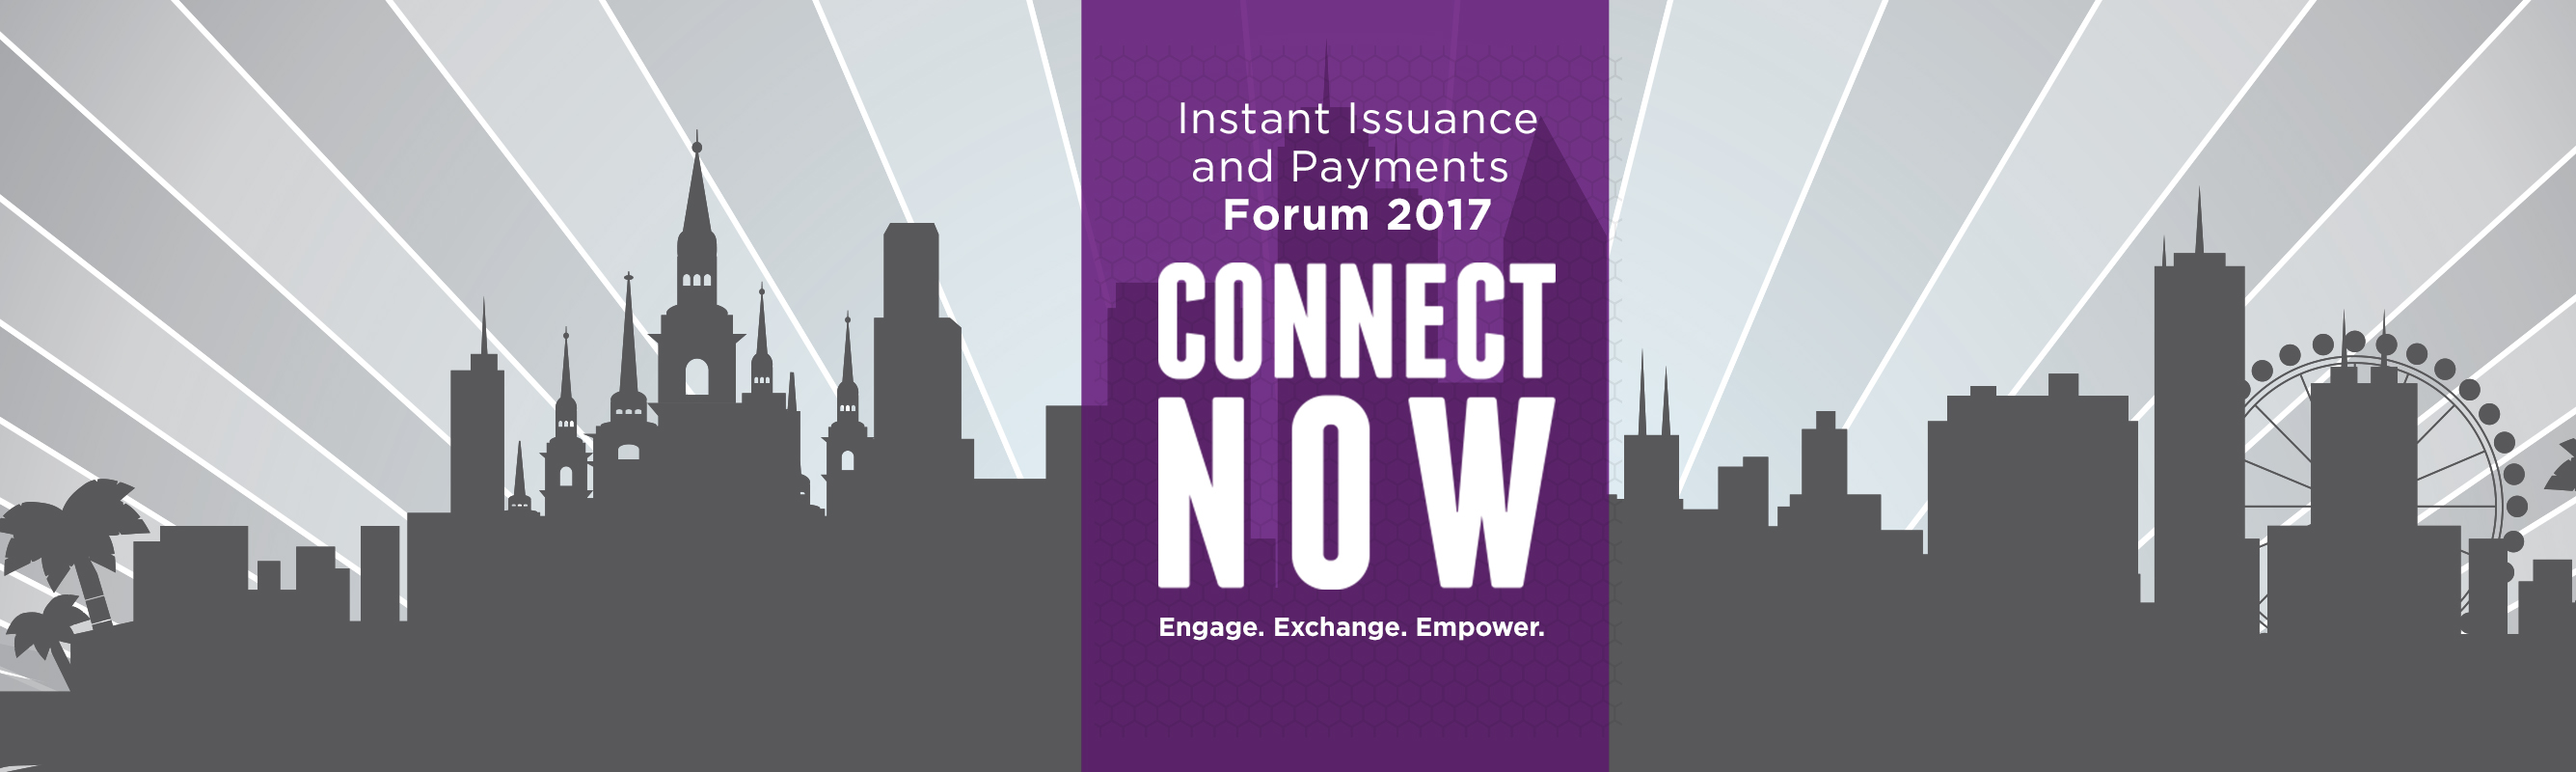 Instant Issuance and Payments Forum 2017